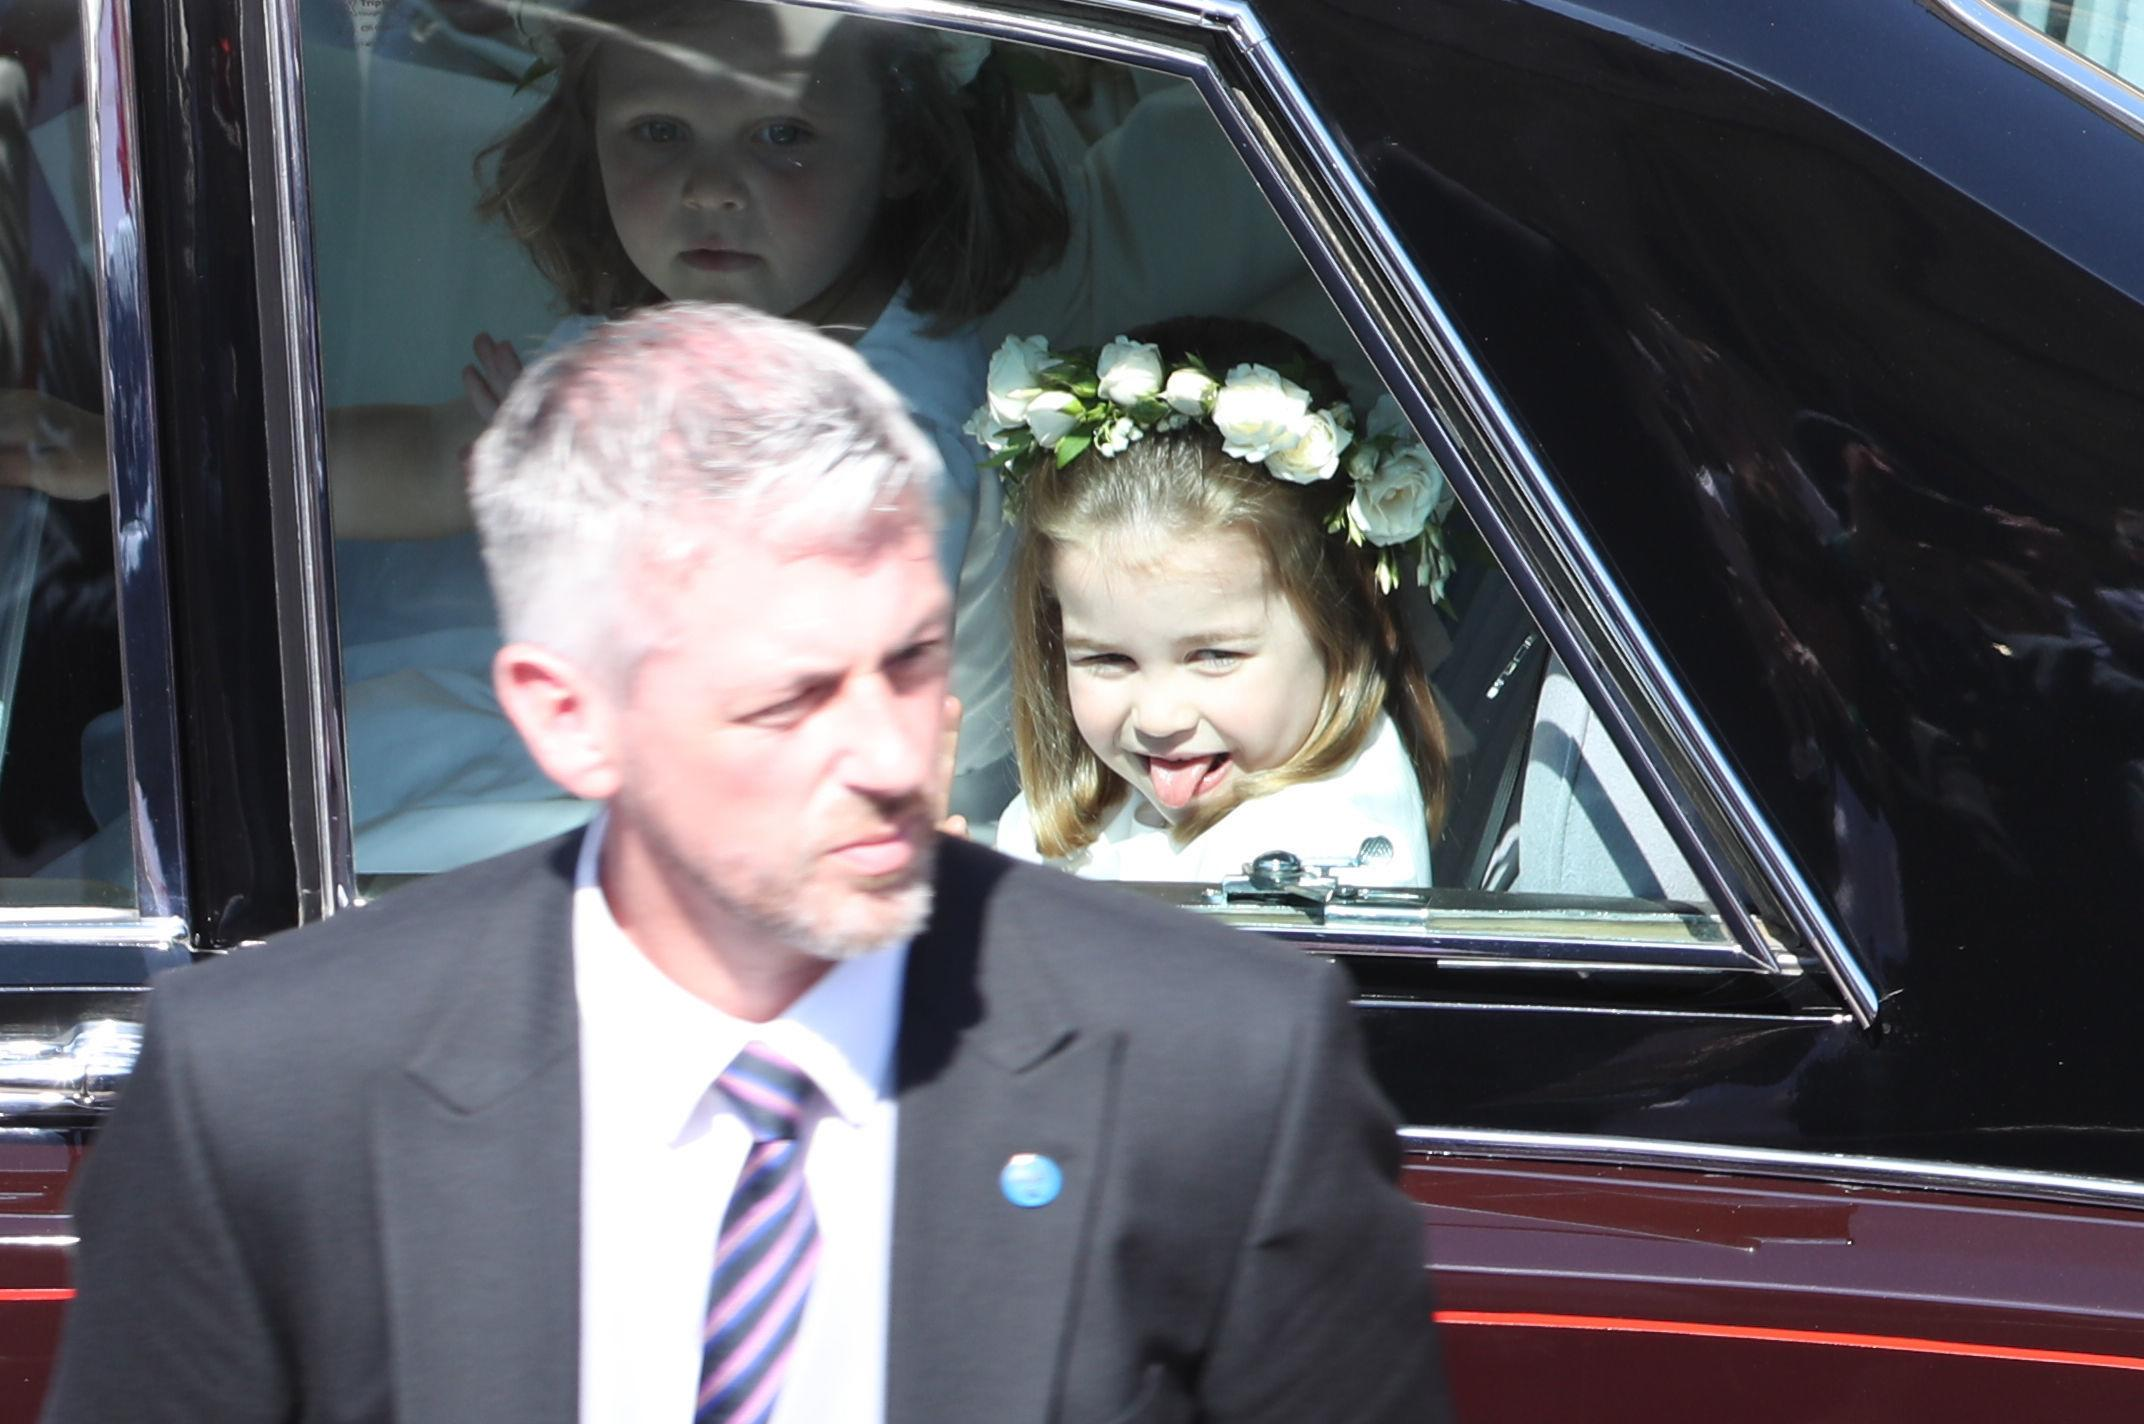 <p>Princess Charlotte sticks out her tongue as she rides in a car to the wedding of Prince Harry and Meghan Markle at St George's Chapel in Windsor Castle on May 19, 2018 in Windsor, England.</p>  <p>(Photo by Andrew Milligan - WPA/Getty Images)</p>